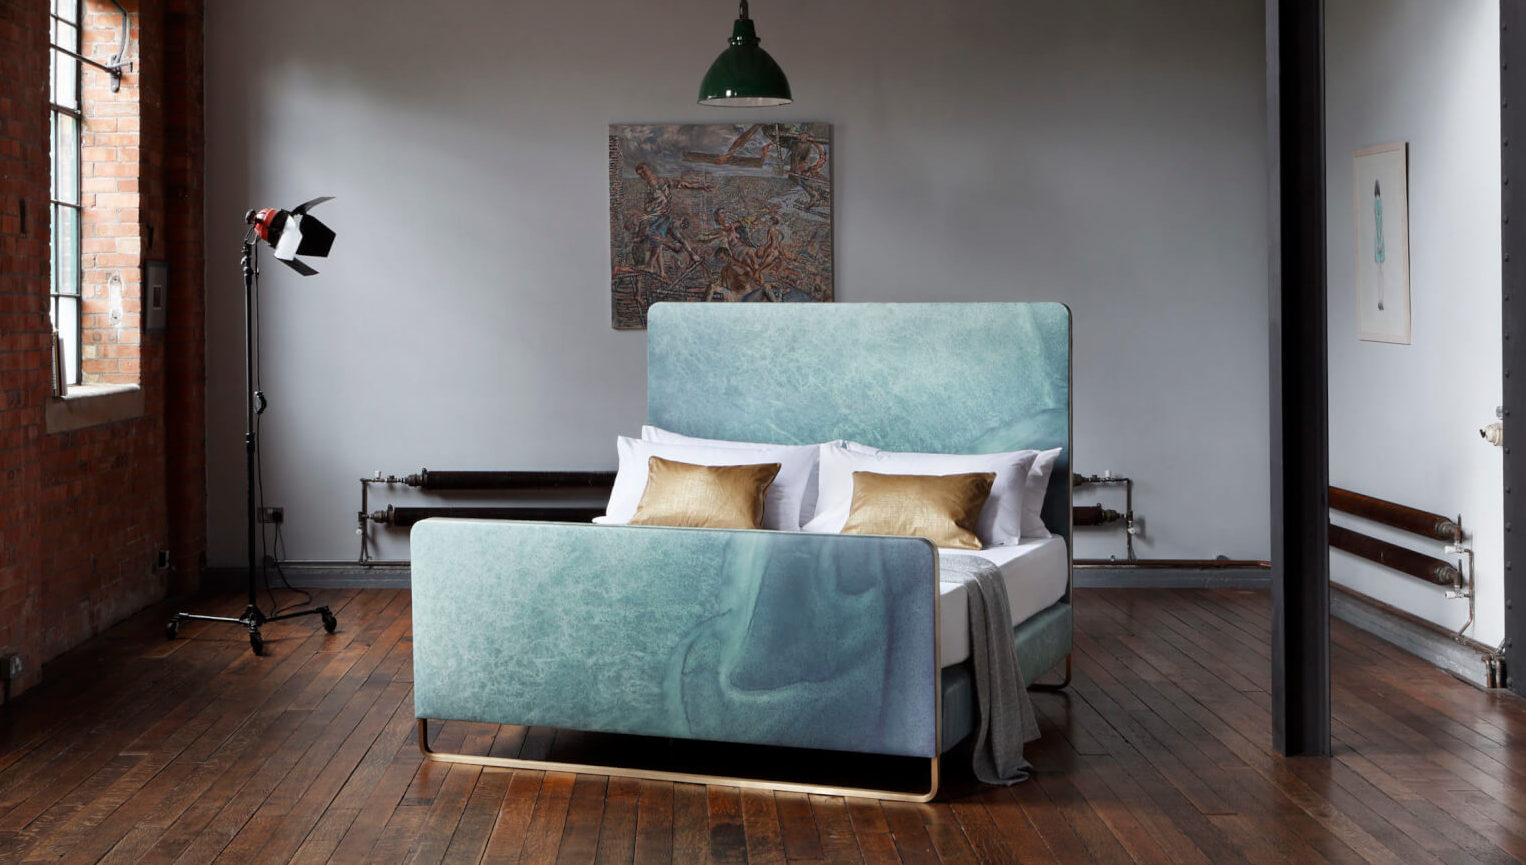 Savior Beds partners with Leather specialist and designer Bill Amberg for a new duo of luxury beds